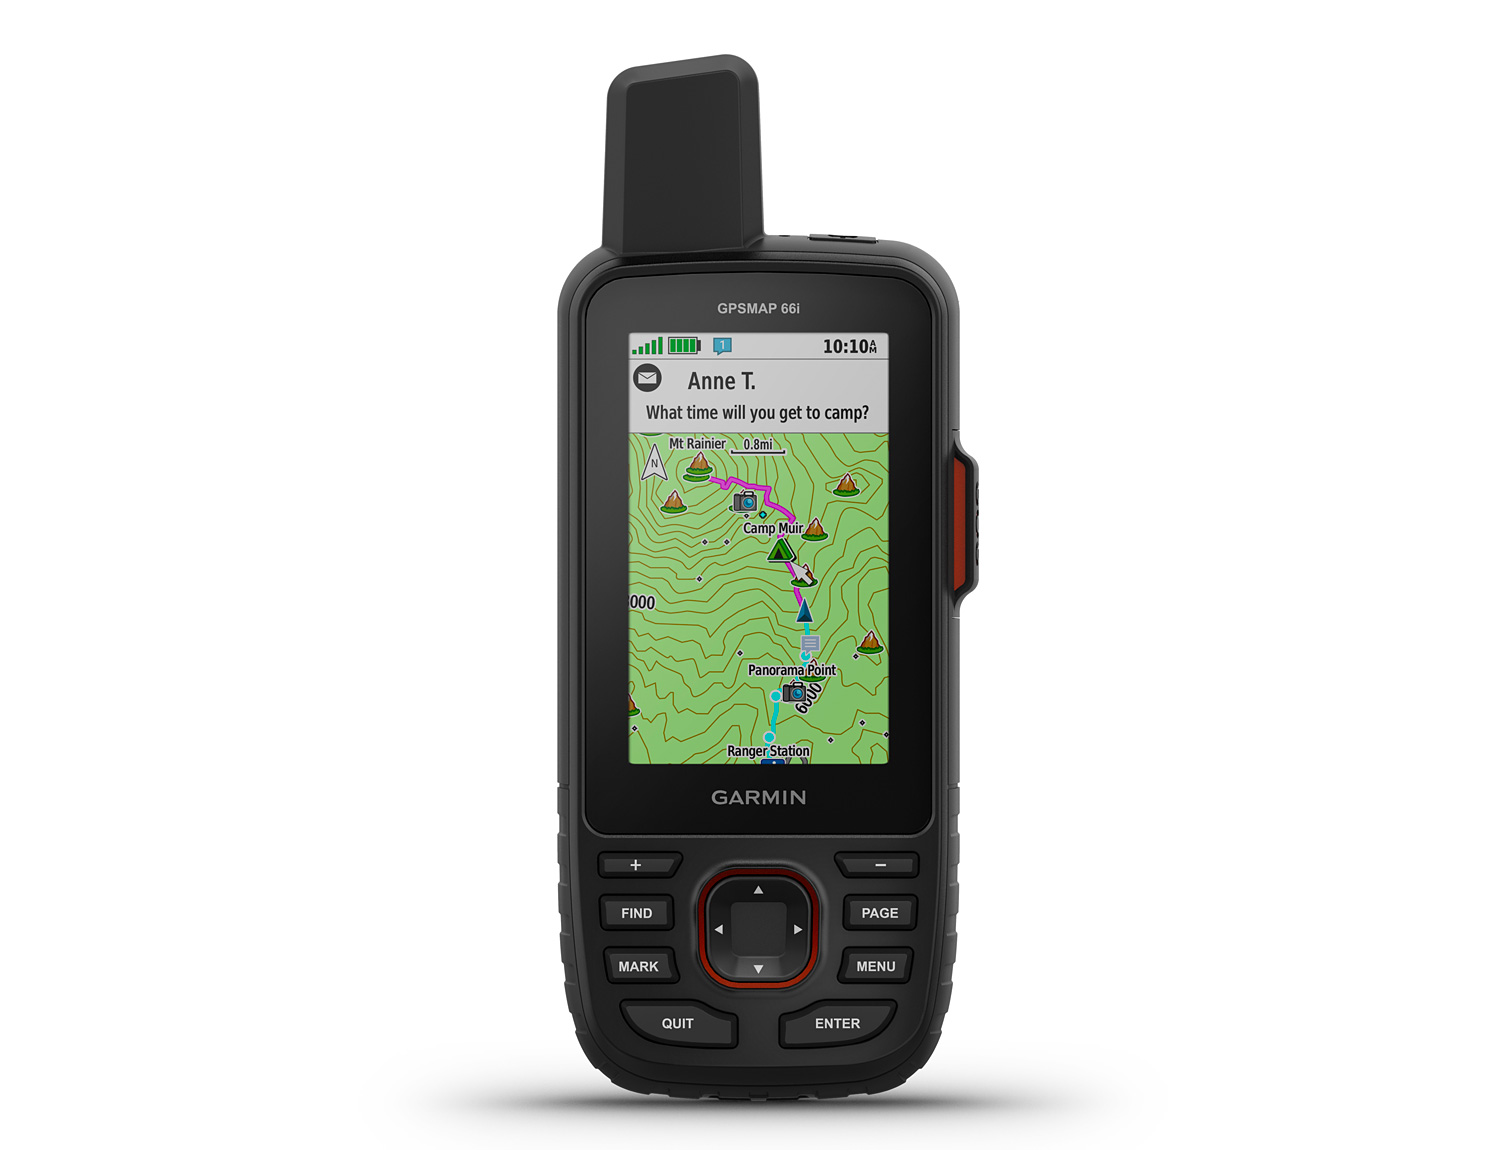 Garmin Brings Satellite Connectivity to the GPSMAP 66i at werd.com